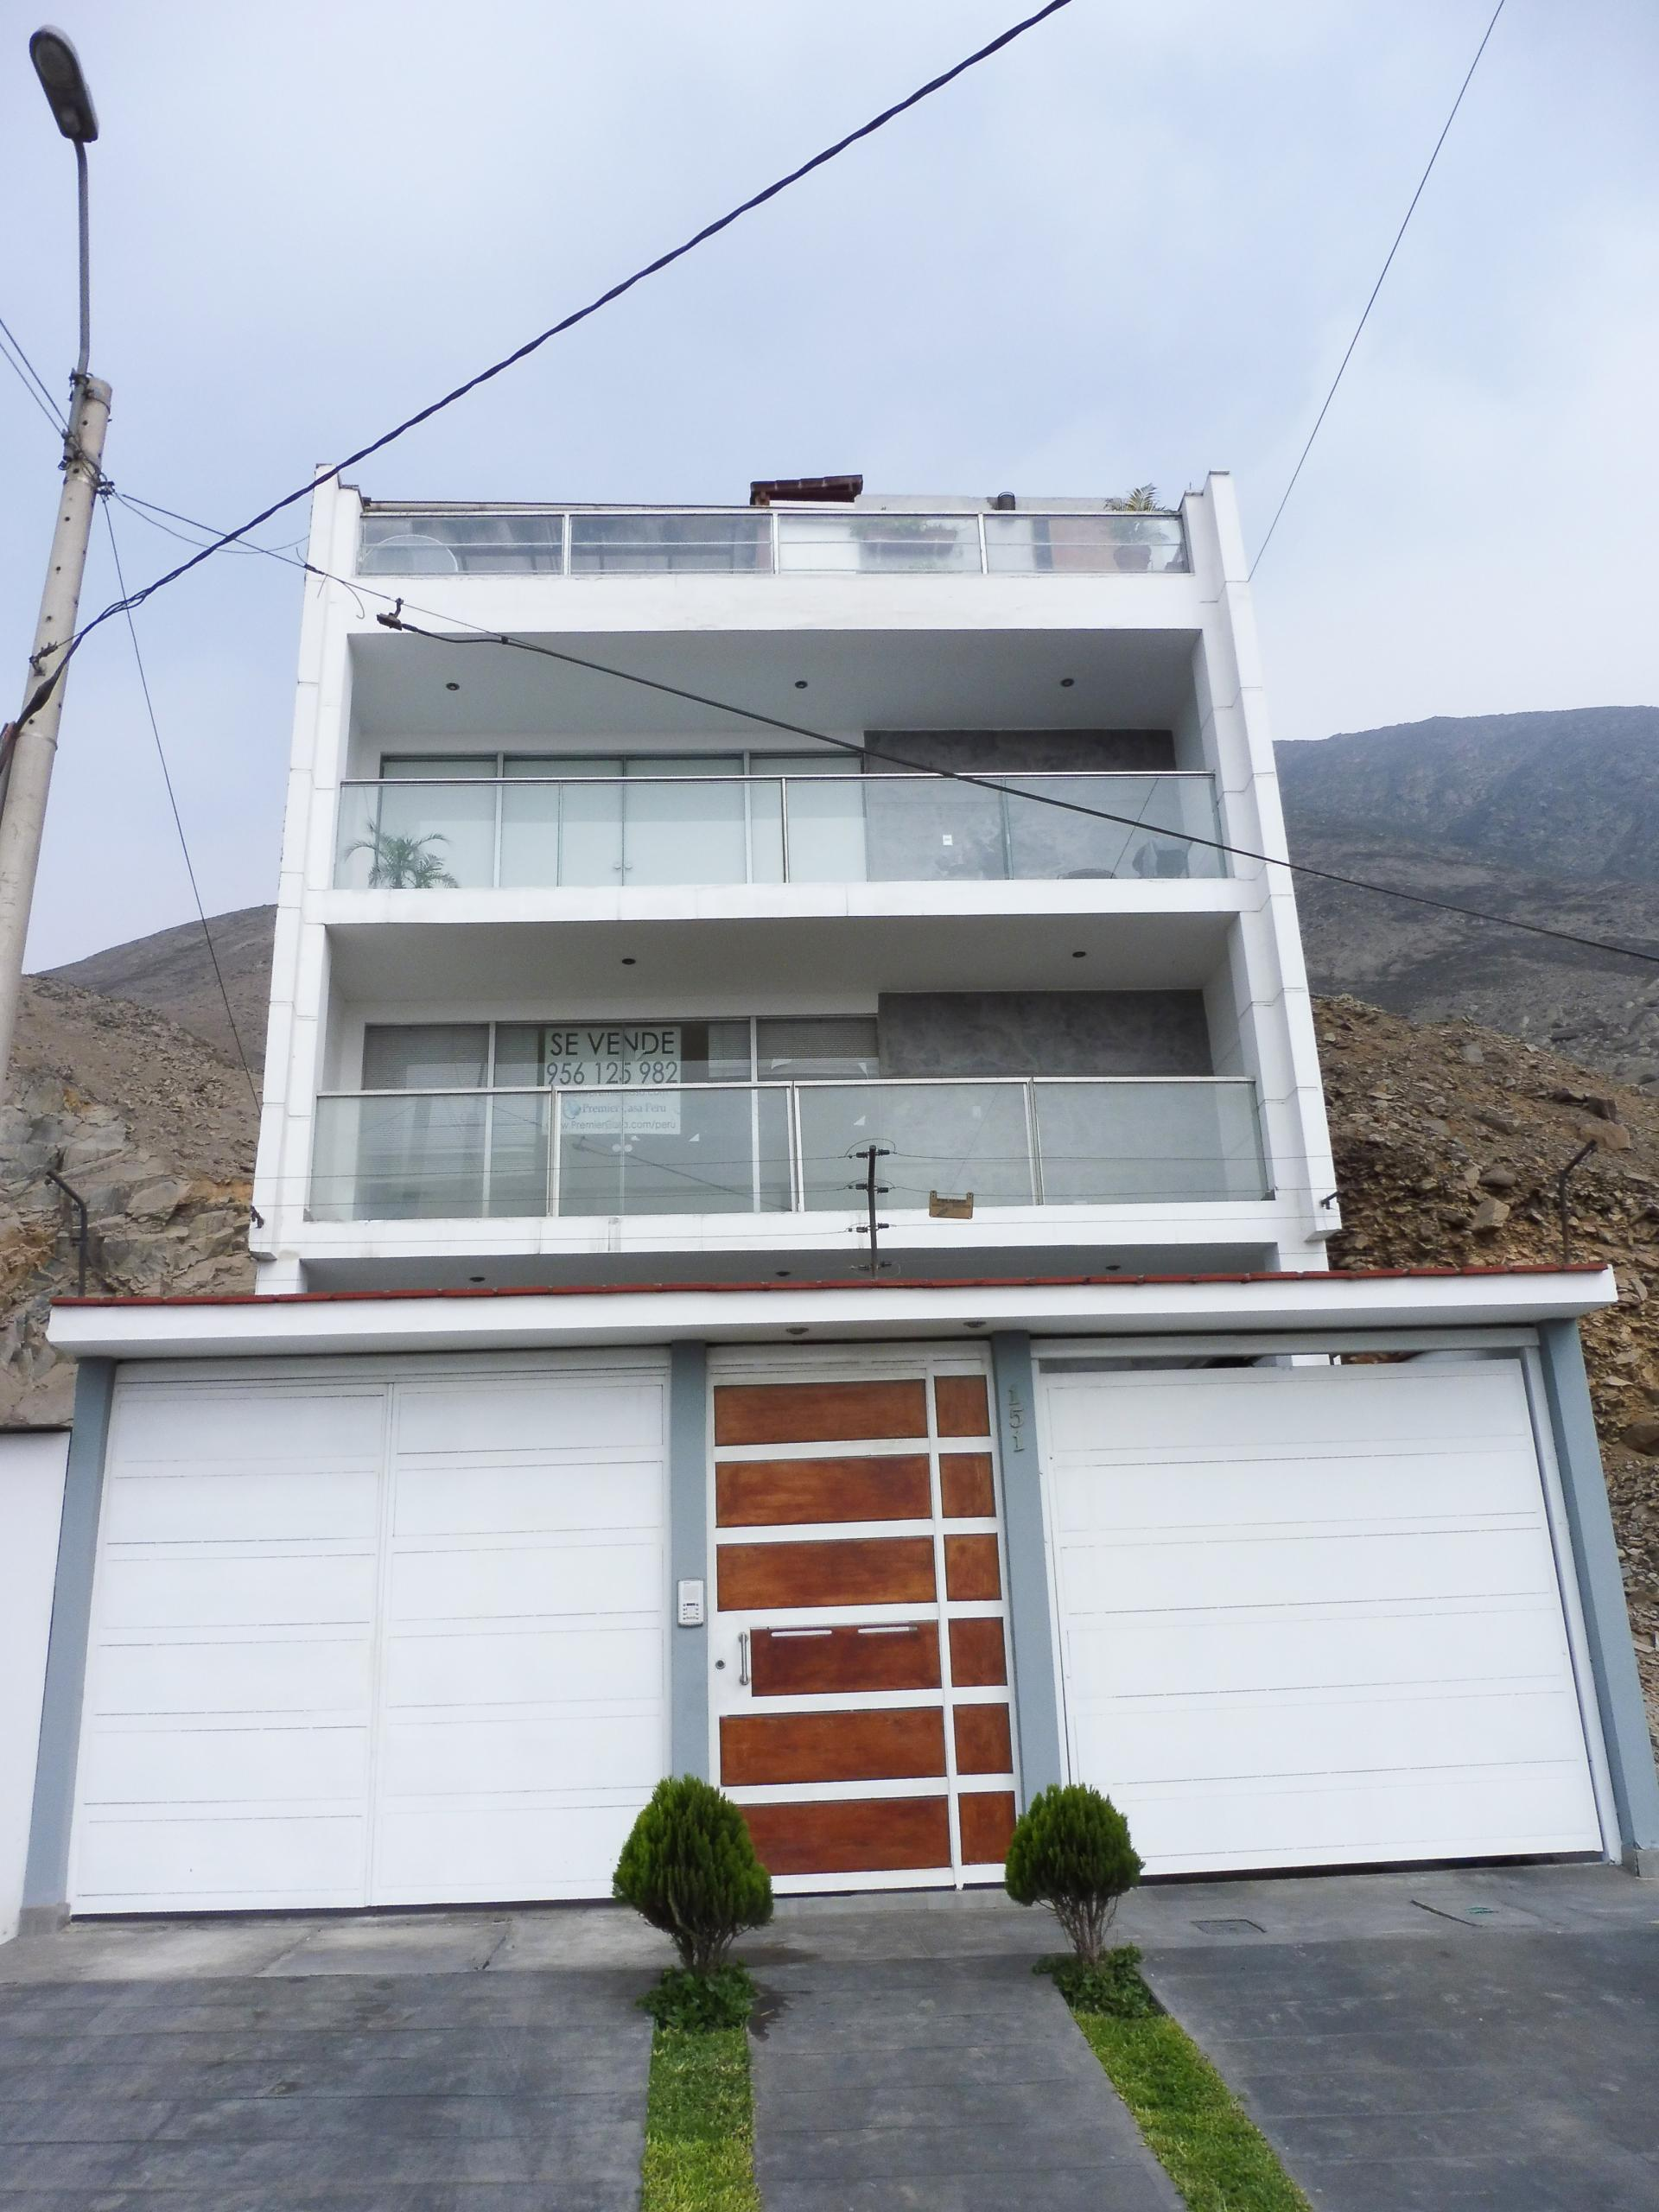 LIMA LA MOLINA 2 APARTMENTS WITH 6 ROOMS